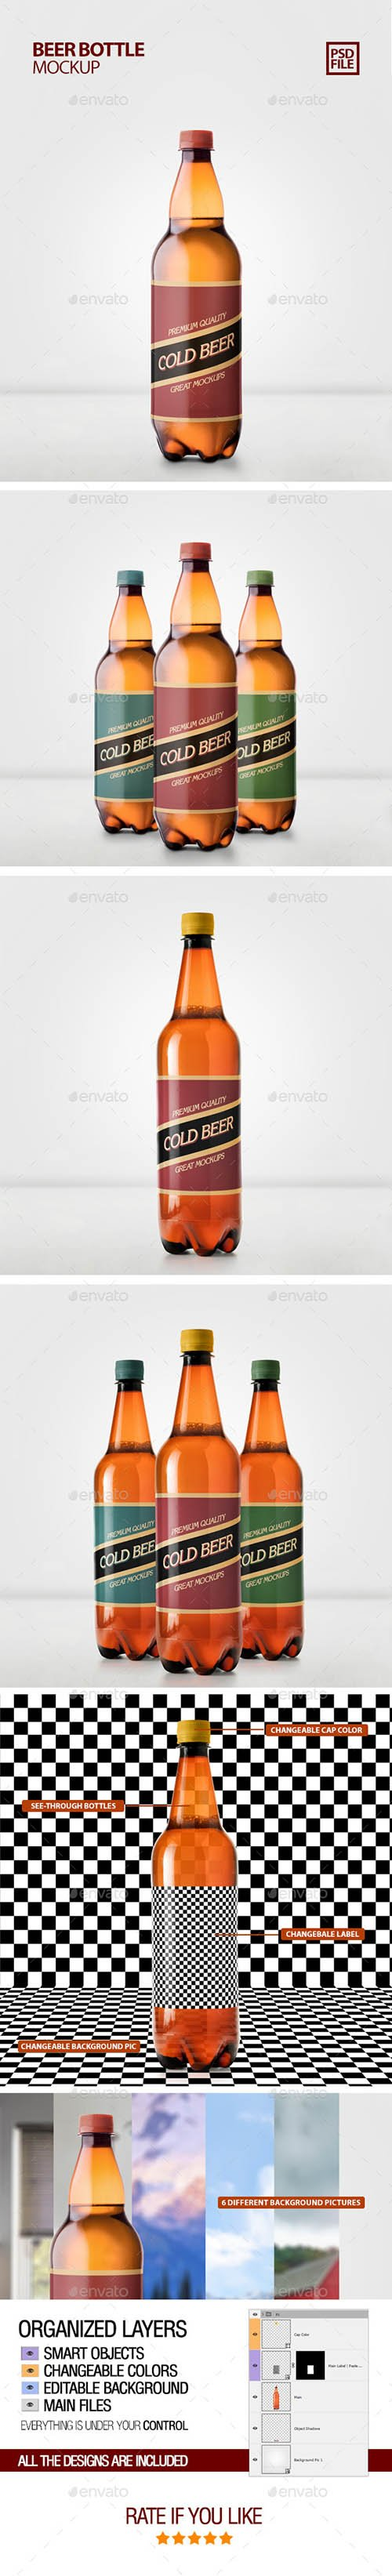 GR - Beer Bottle Mockup 22120721